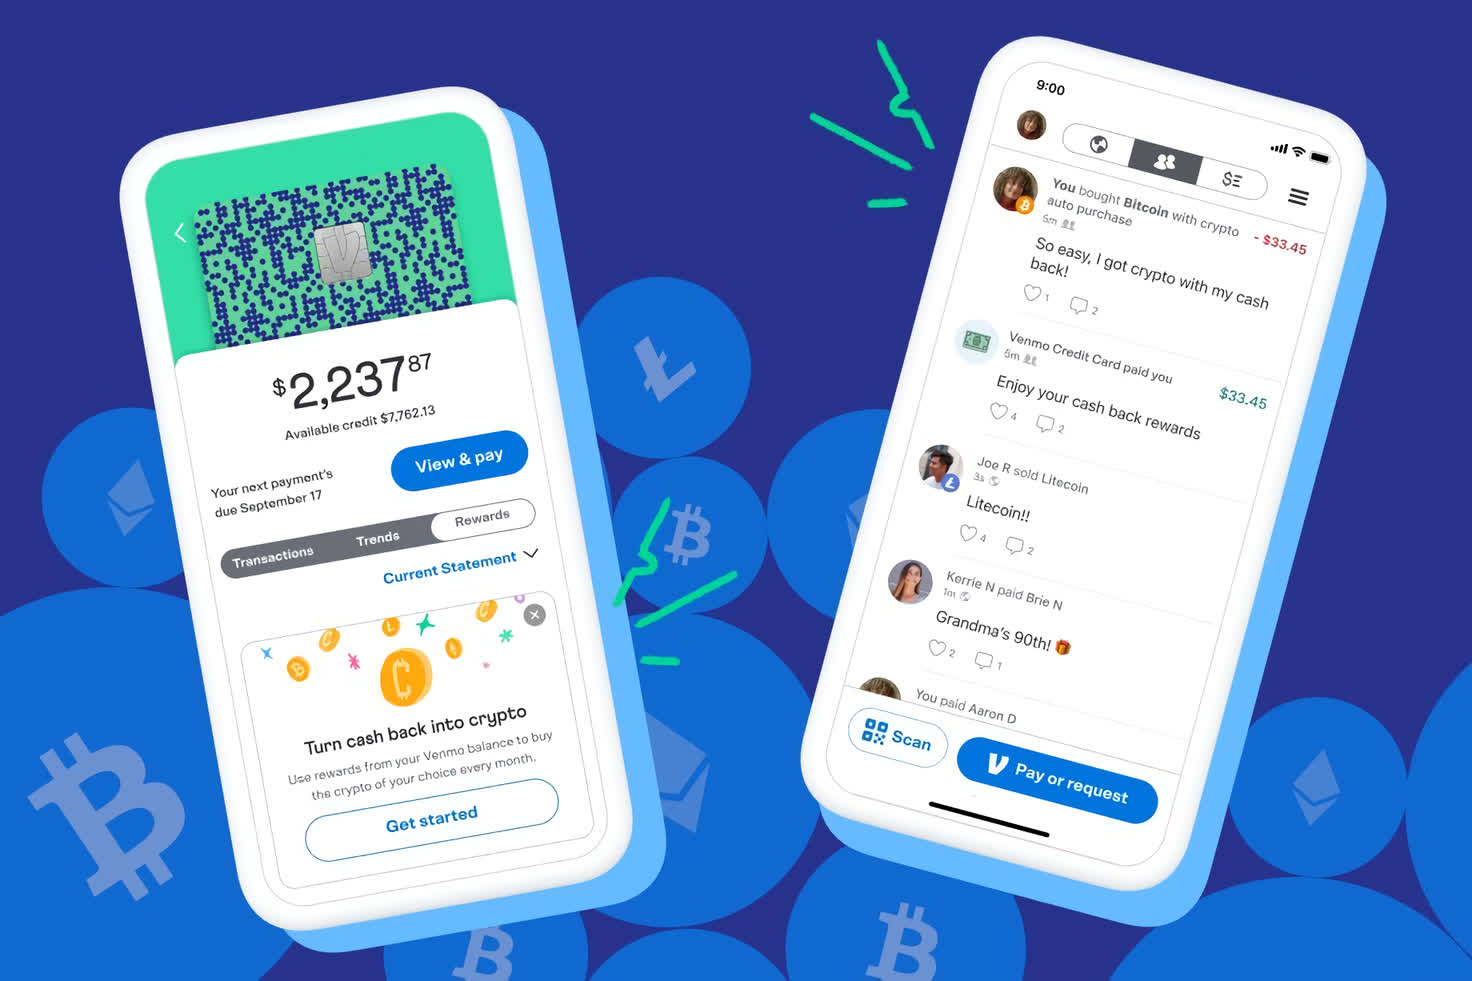 Venmo now lets credit card holders automatically buy cryptocurrency using cash back rewards